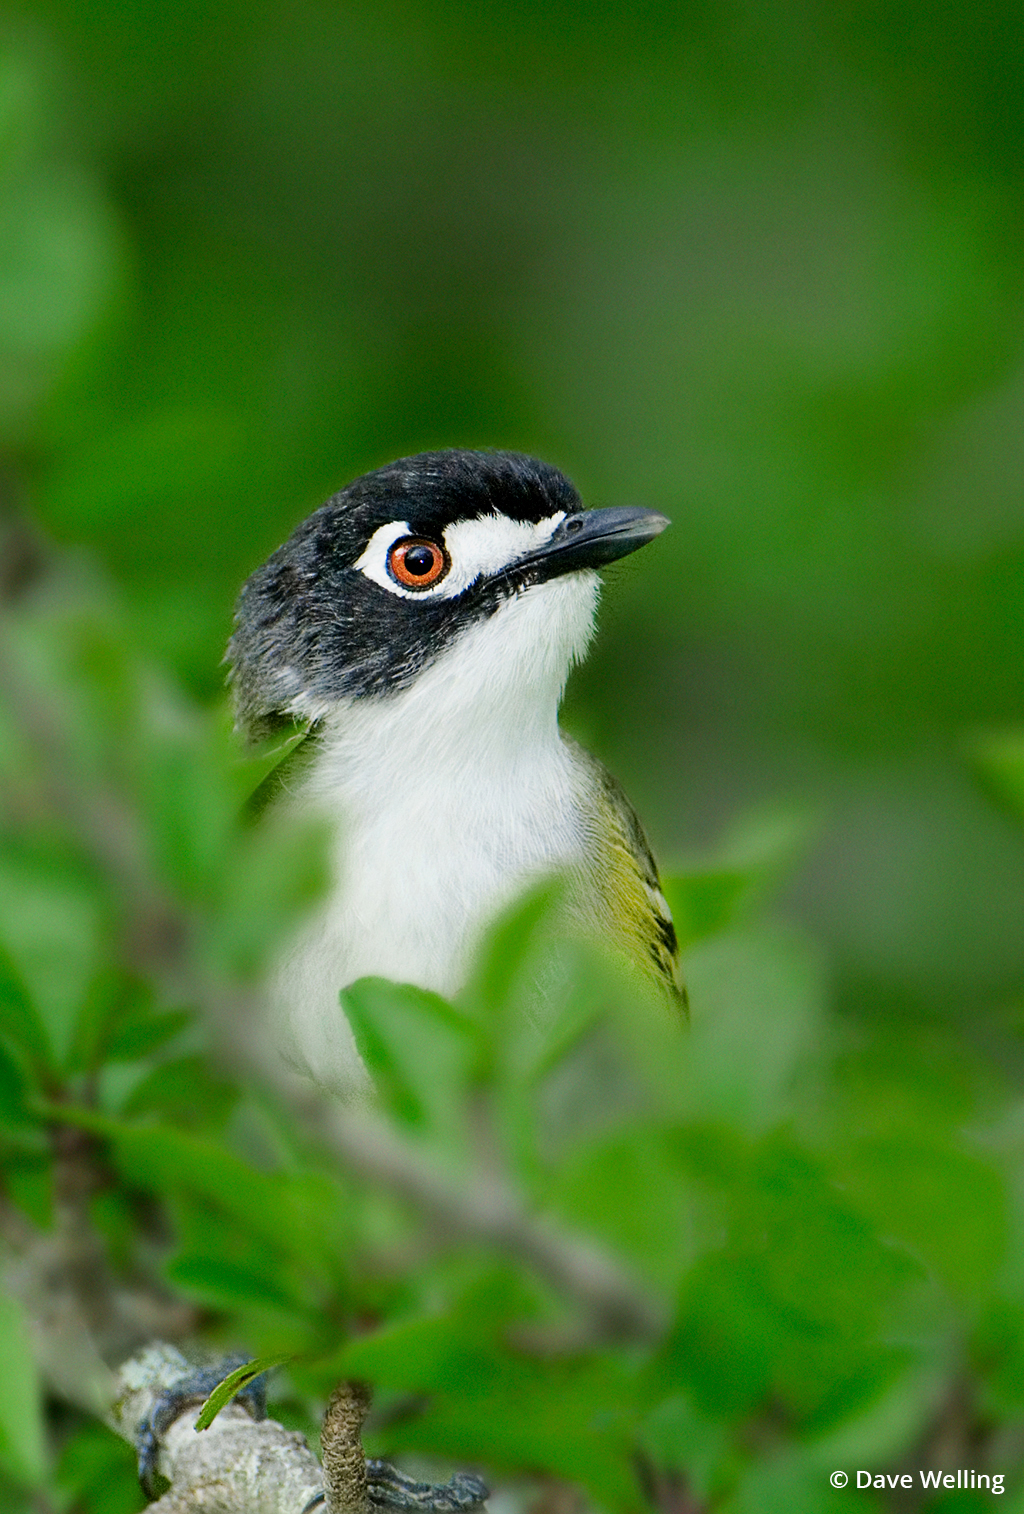 Image of a black-capped vireo.